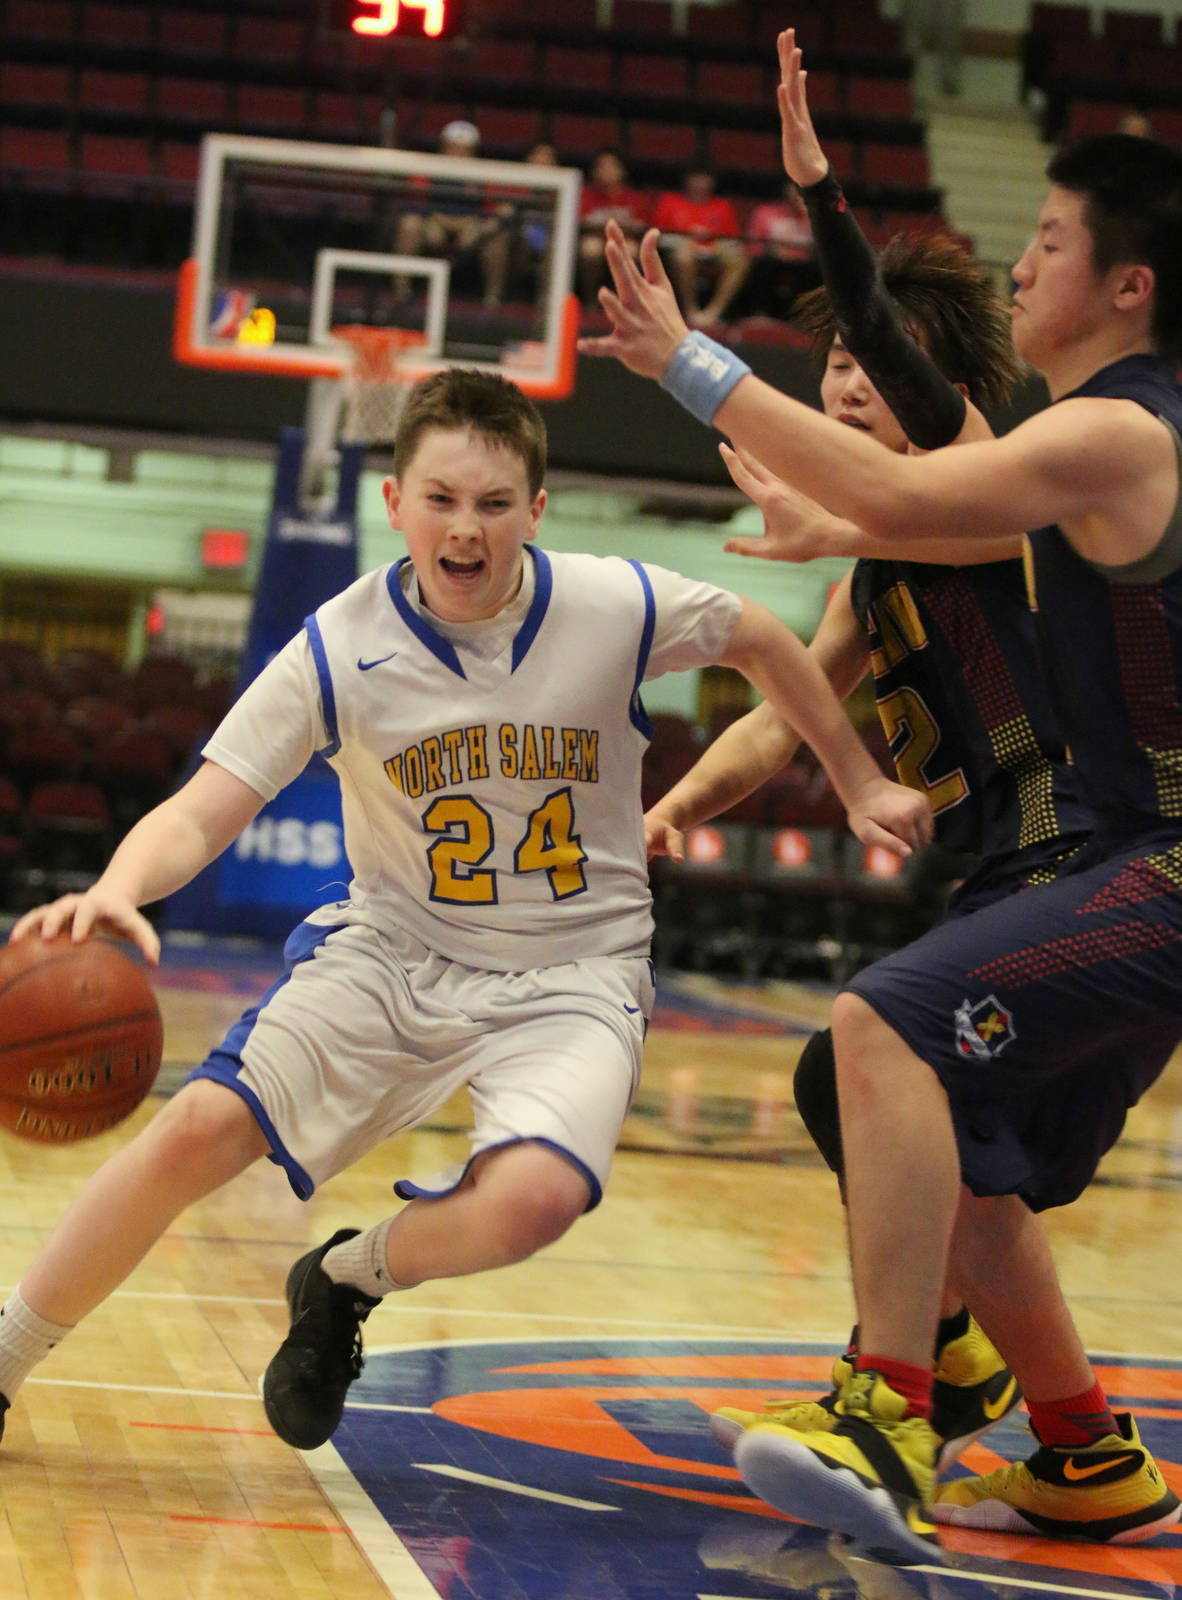 North Salem 14 Year Old Boy Missing Since Tuesday: Photos: North Salem Basketball Defeats Keio In Semifinals